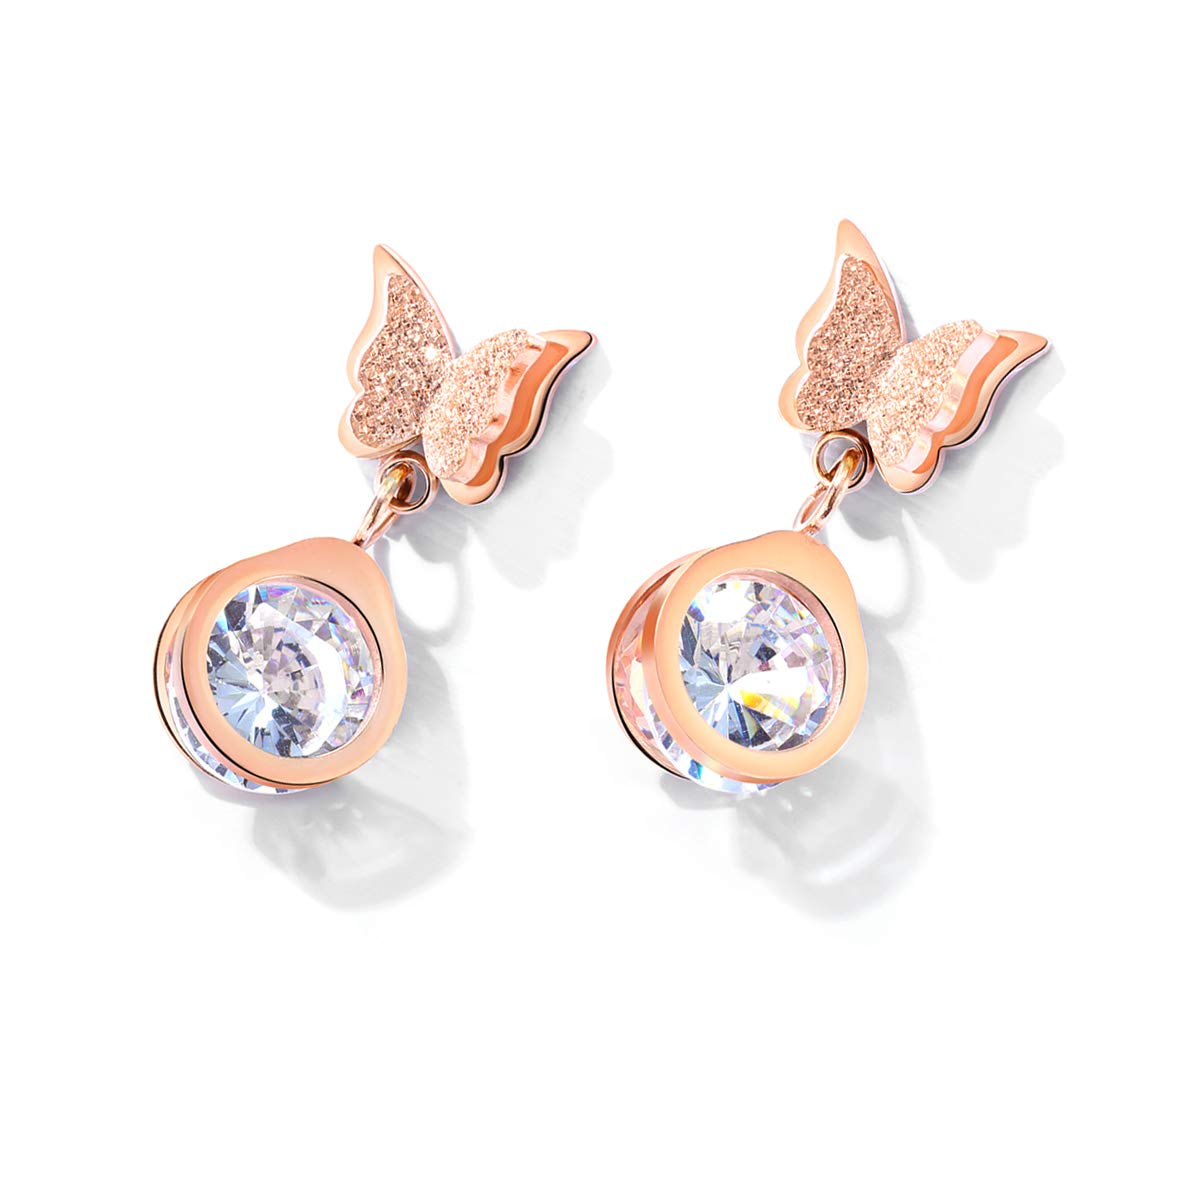 0a9030c26 HooAMI Women's Rose Gold Stainless Steel Butterfly Earrings Set Crystal  Rhinestone Drop Dangle Earring: Amazon.co.uk: Jewellery